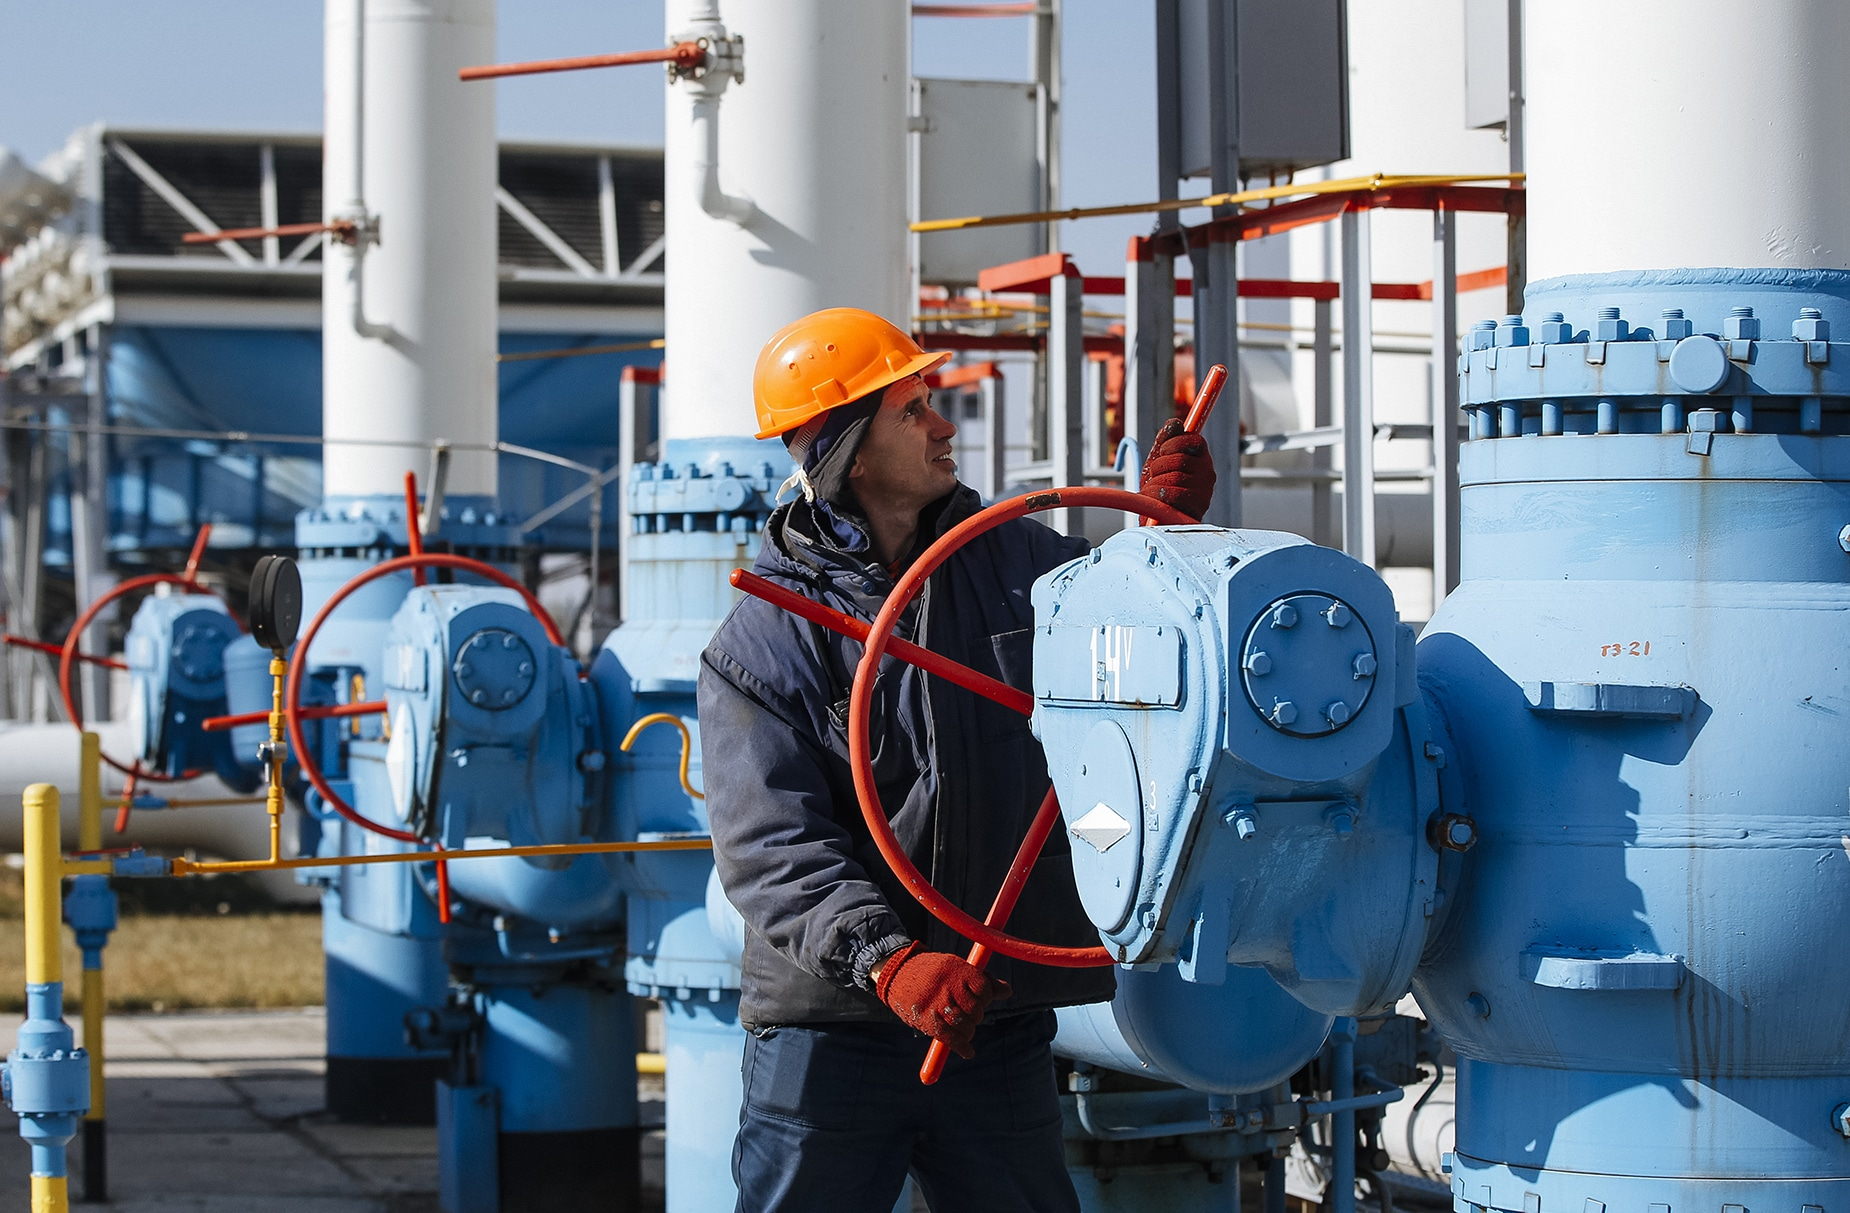 h 55723258 - It's final! Russia's Gazprom, Ukraine's Naftogaz will keep EU supply flowing